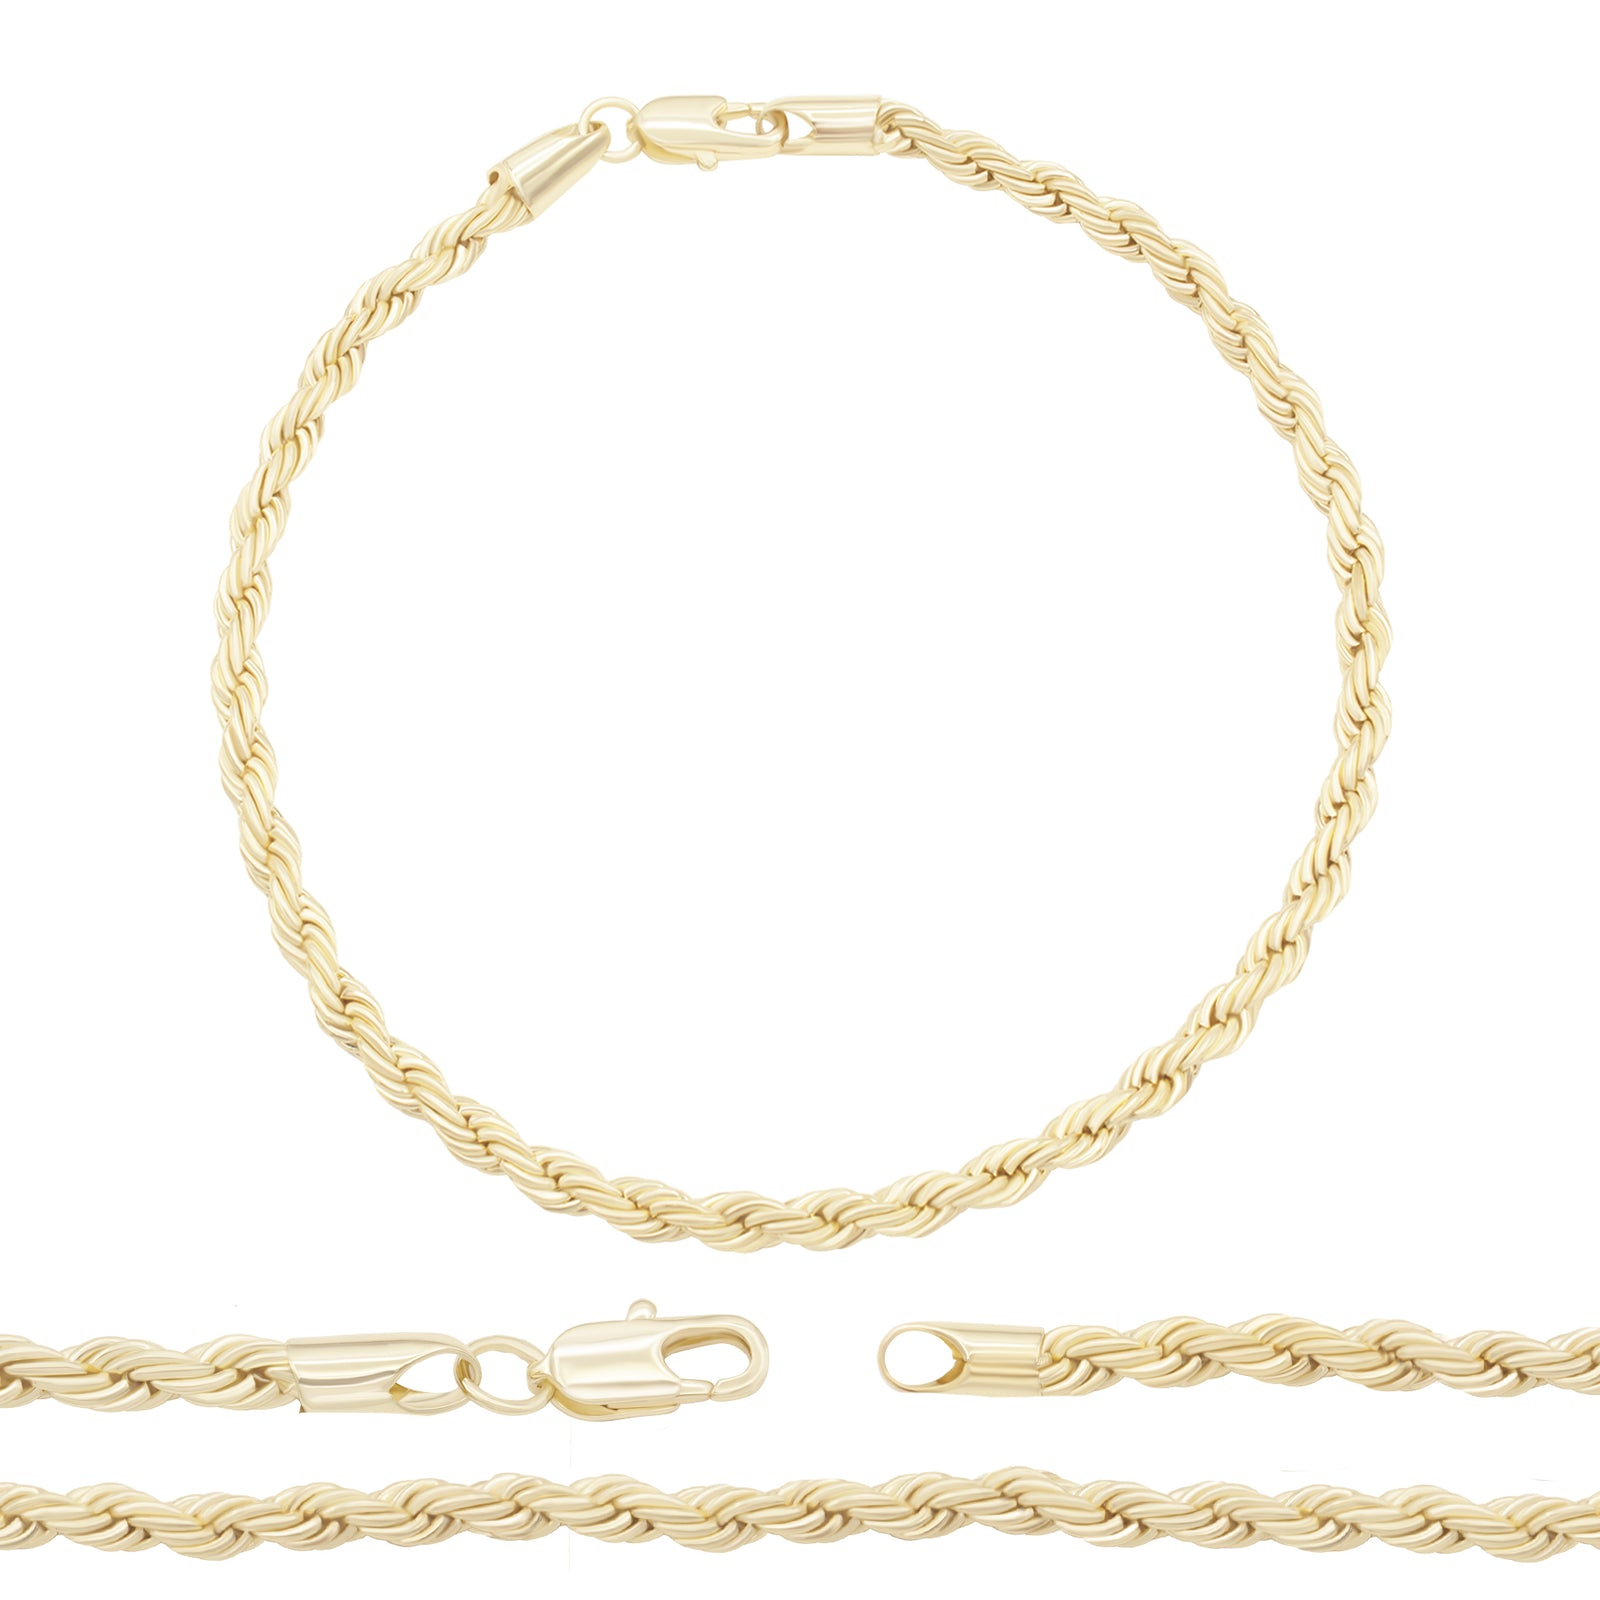 Rope Chain Anklet Bracelet Gold Filled 14KT Foot Chain Fashion Jewelry Gifts for Women Teen Girls 9.5'' Long